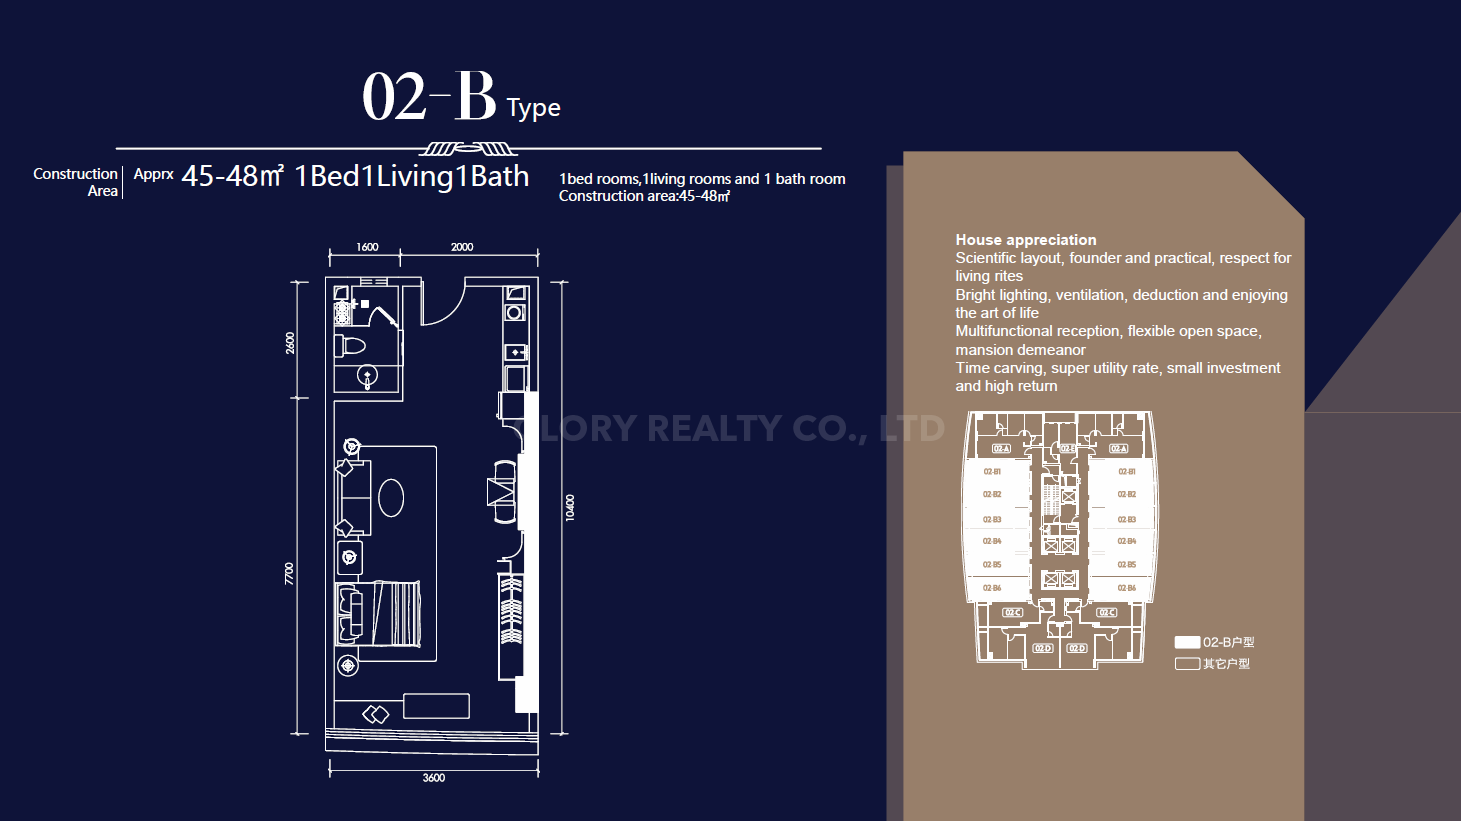 02-B (1 Bed, 1 Living, 1 Bath) Type